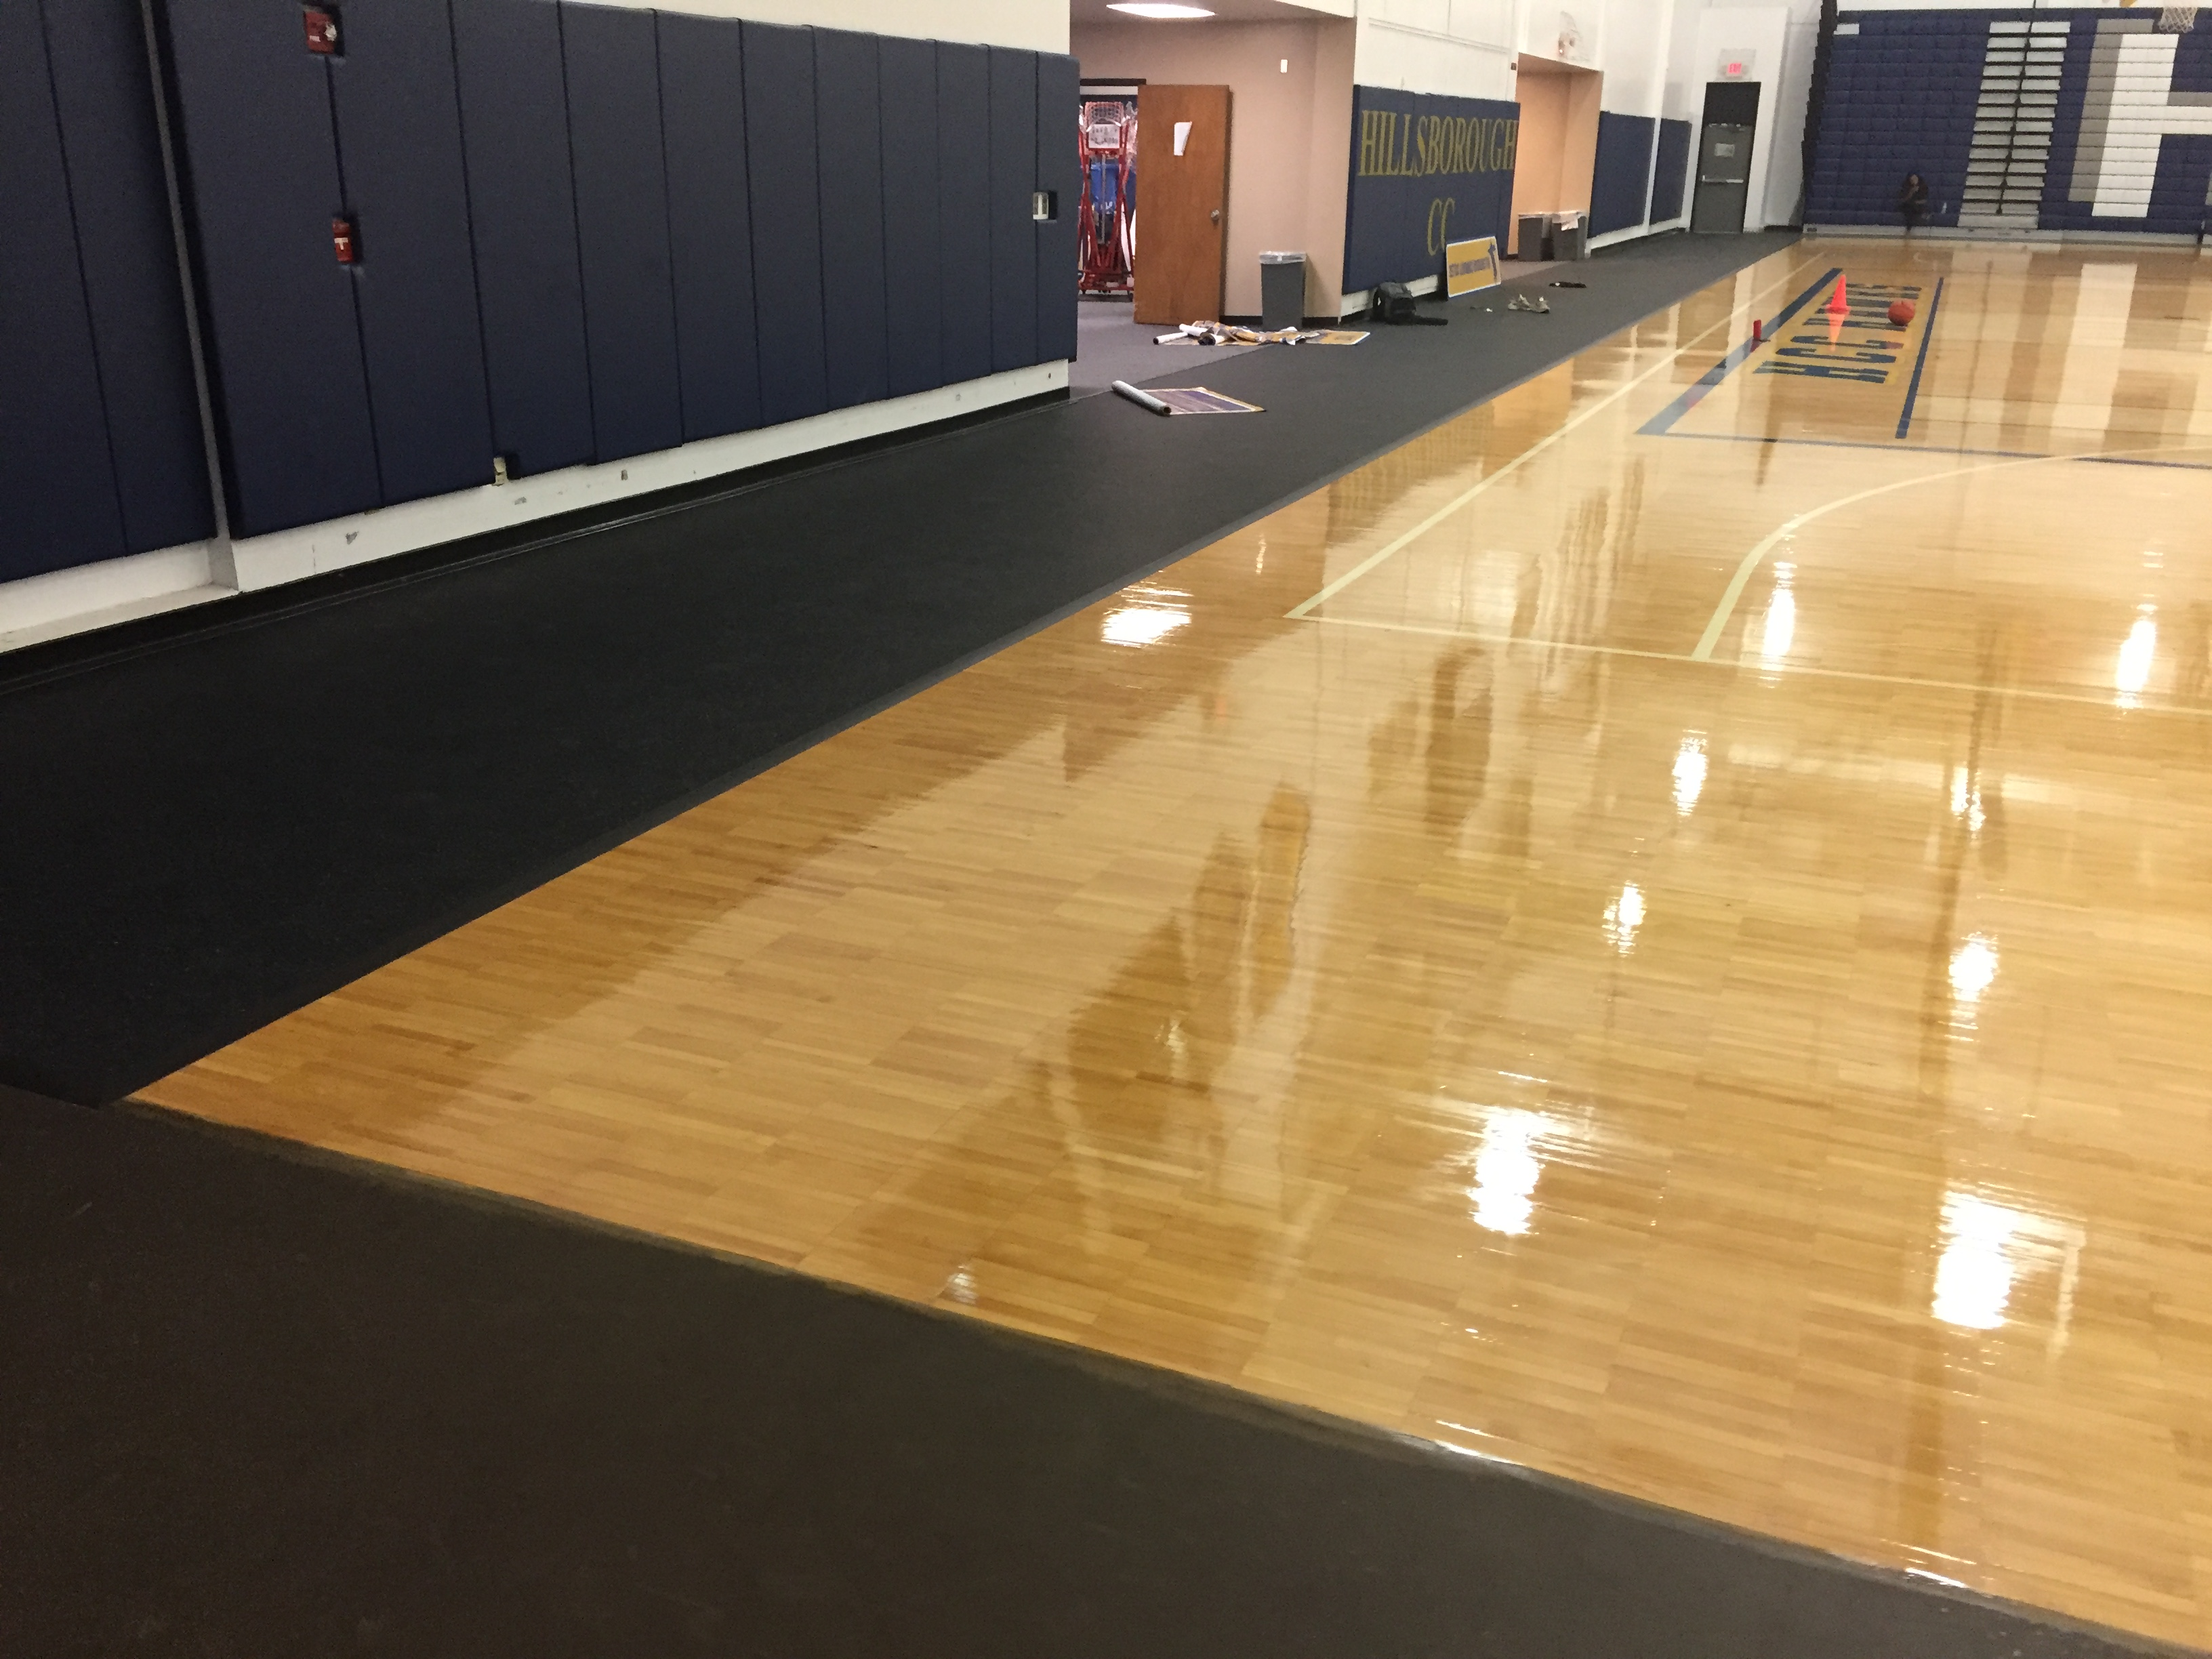 baylis reduction sizing x free underlayment floors sound flooring synthetic for laminate rubber samples noise